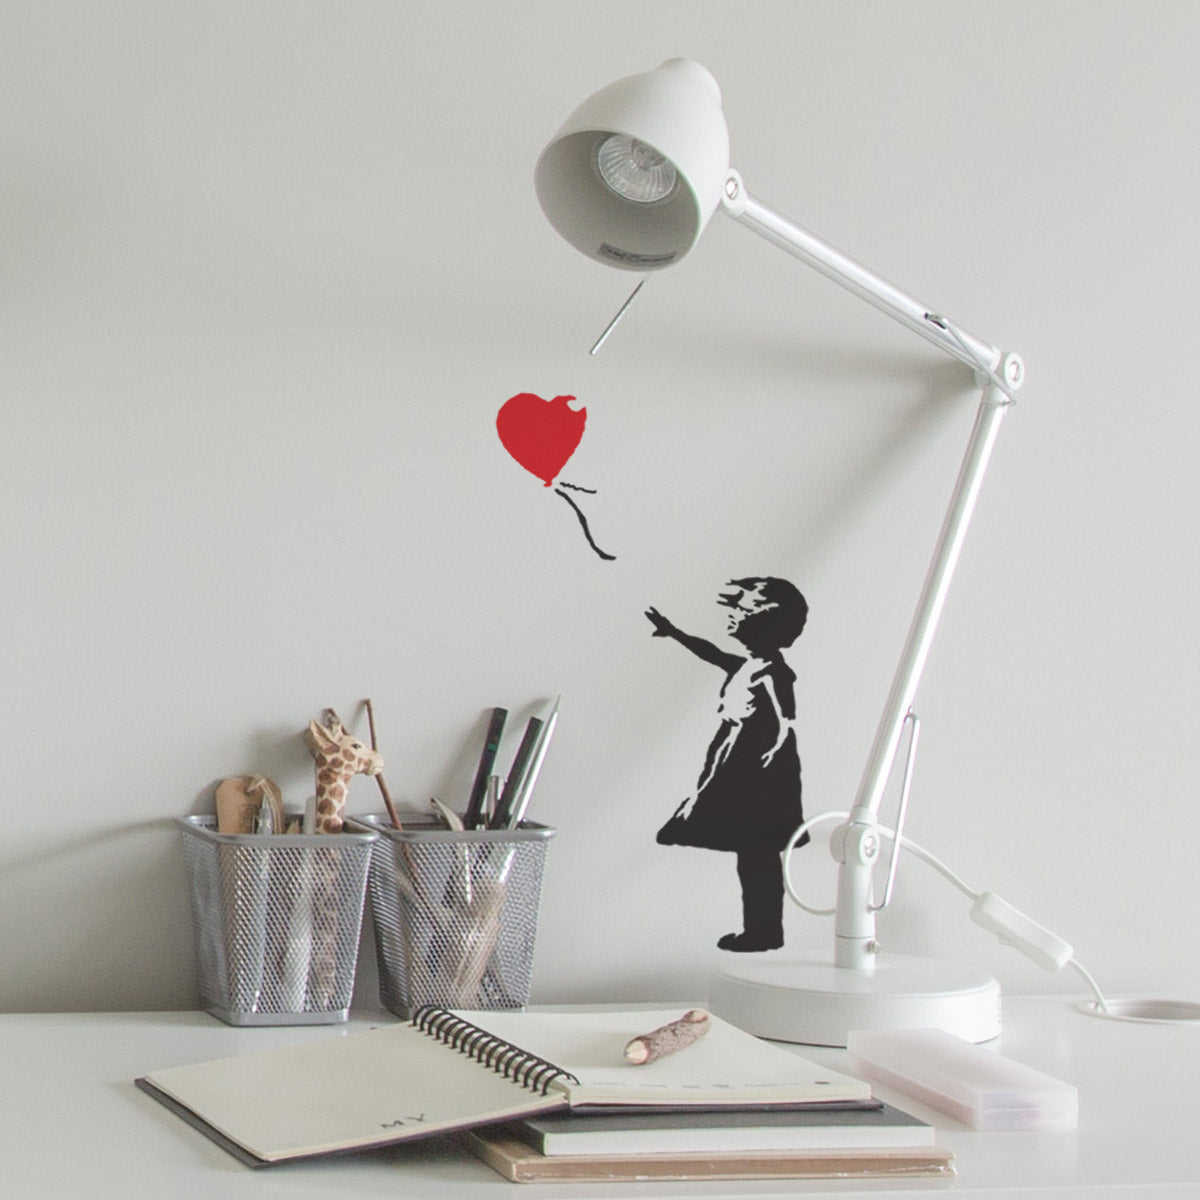 CraftStar Banksy Balloon Girl Stencil in Study